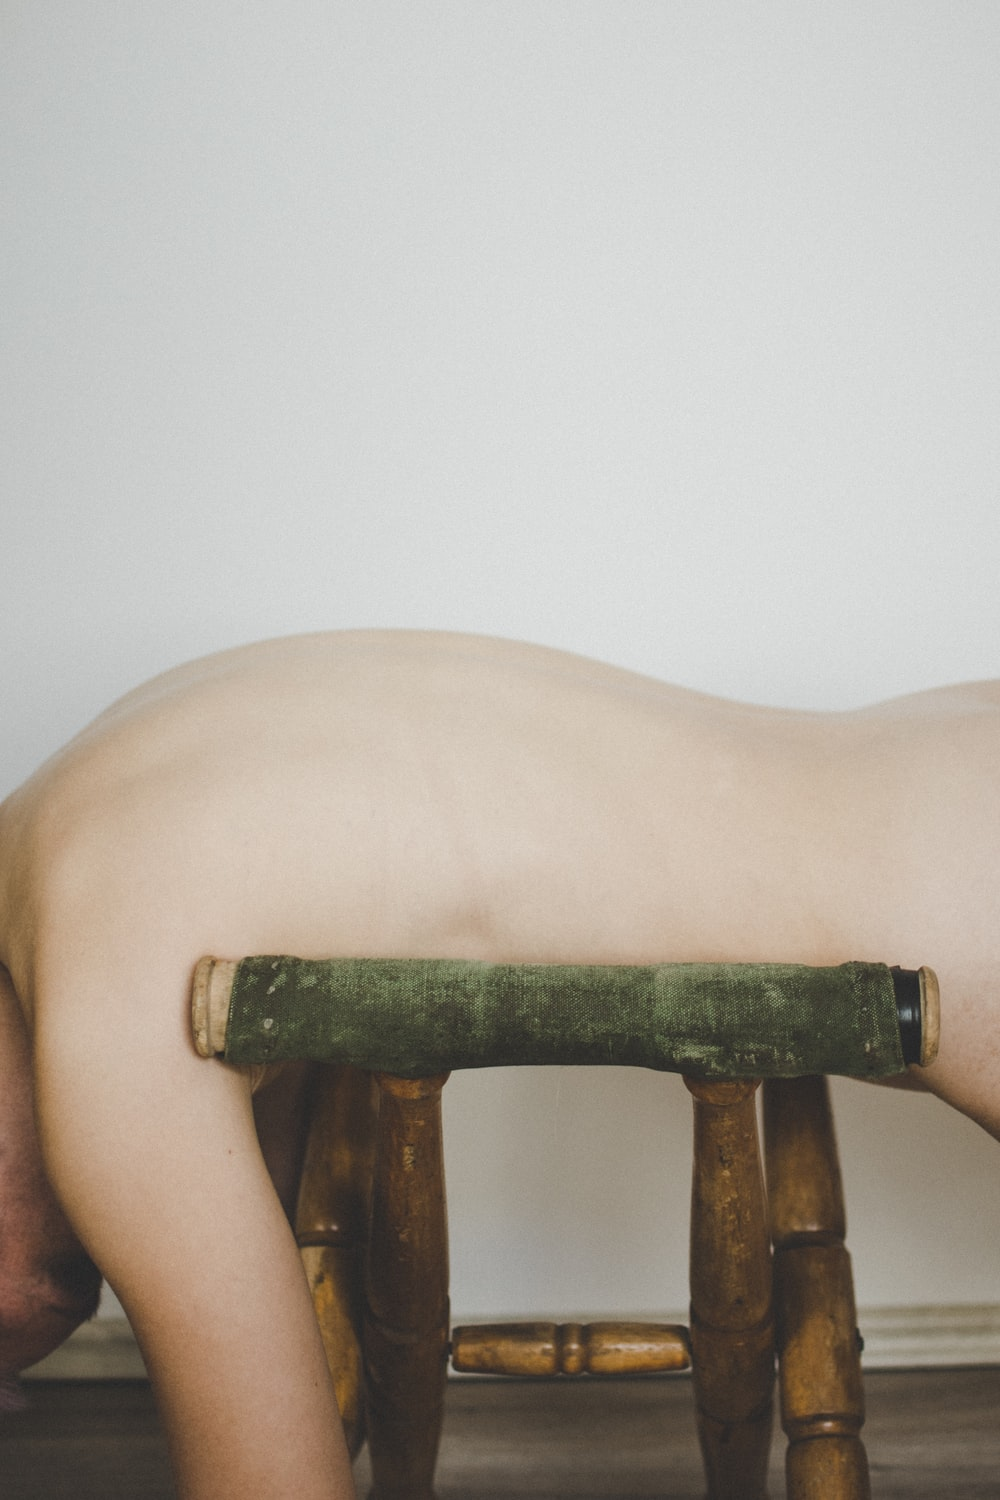 naked person on brown wooden bench